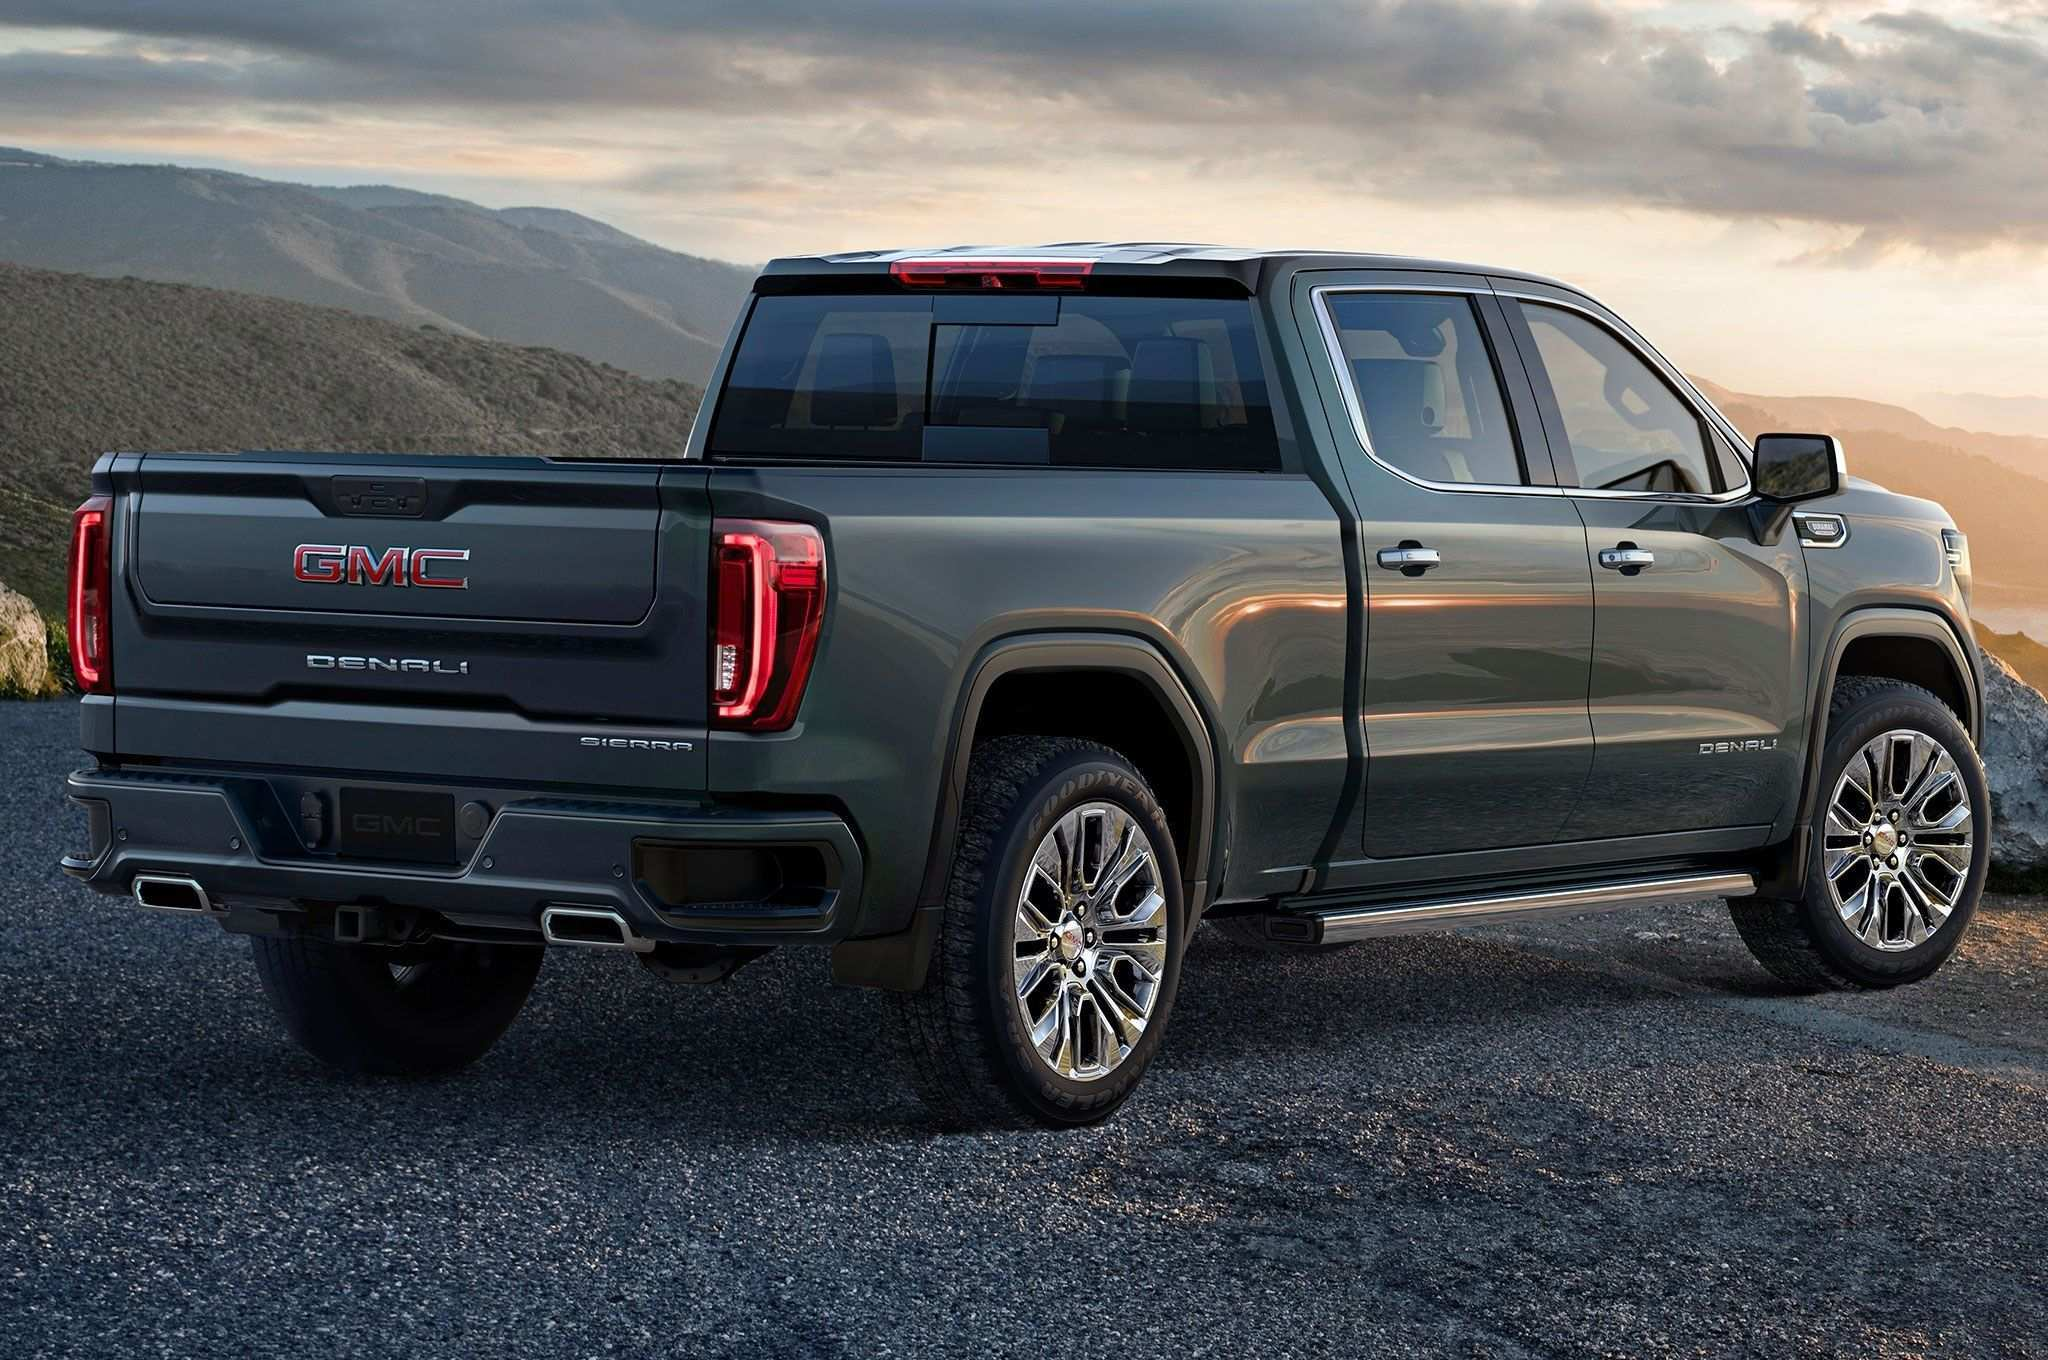 65 Great The Images Of 2019 Gmc Sierra Release Specs And Review Concept with The Images Of 2019 Gmc Sierra Release Specs And Review